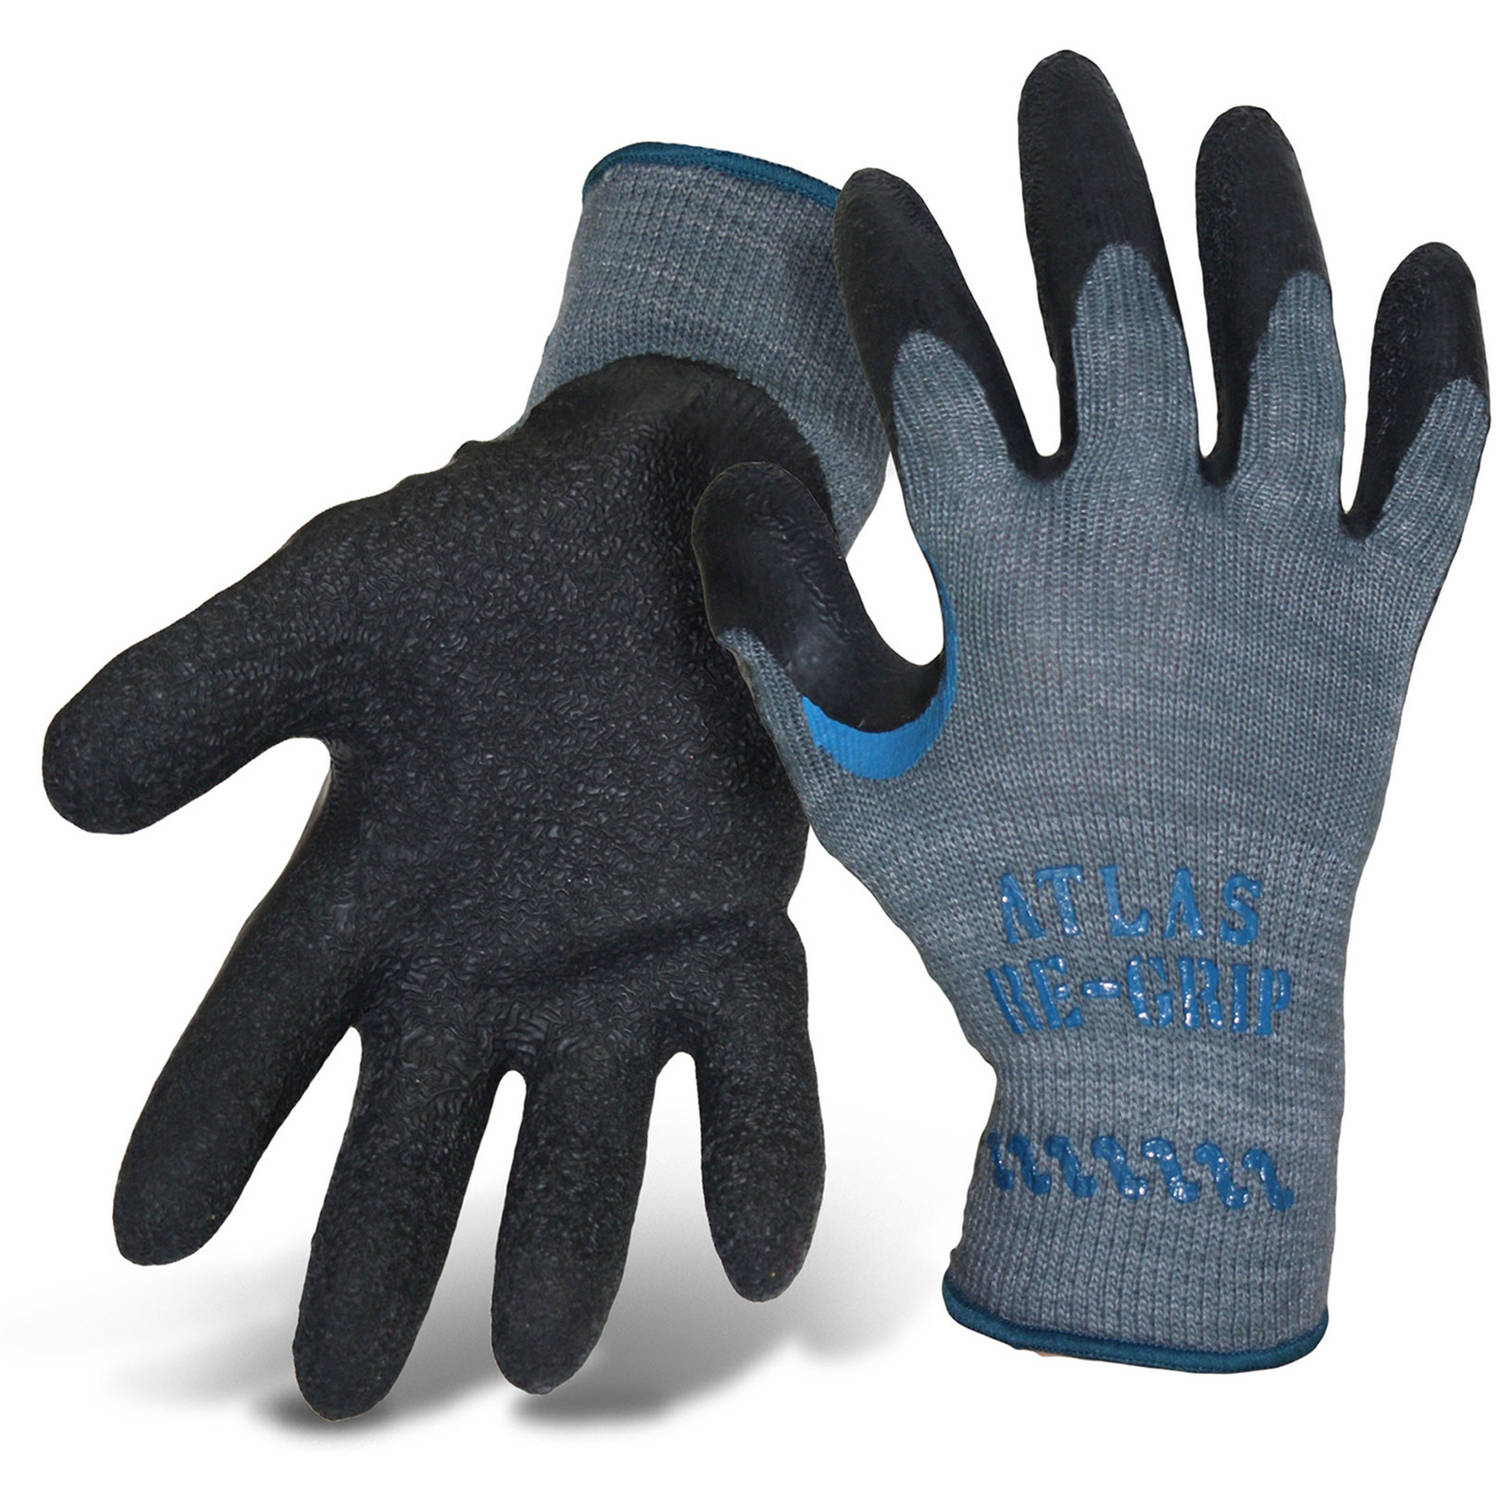 Atlas Glove 8330X Extra Large Reinforced Grip Gloves